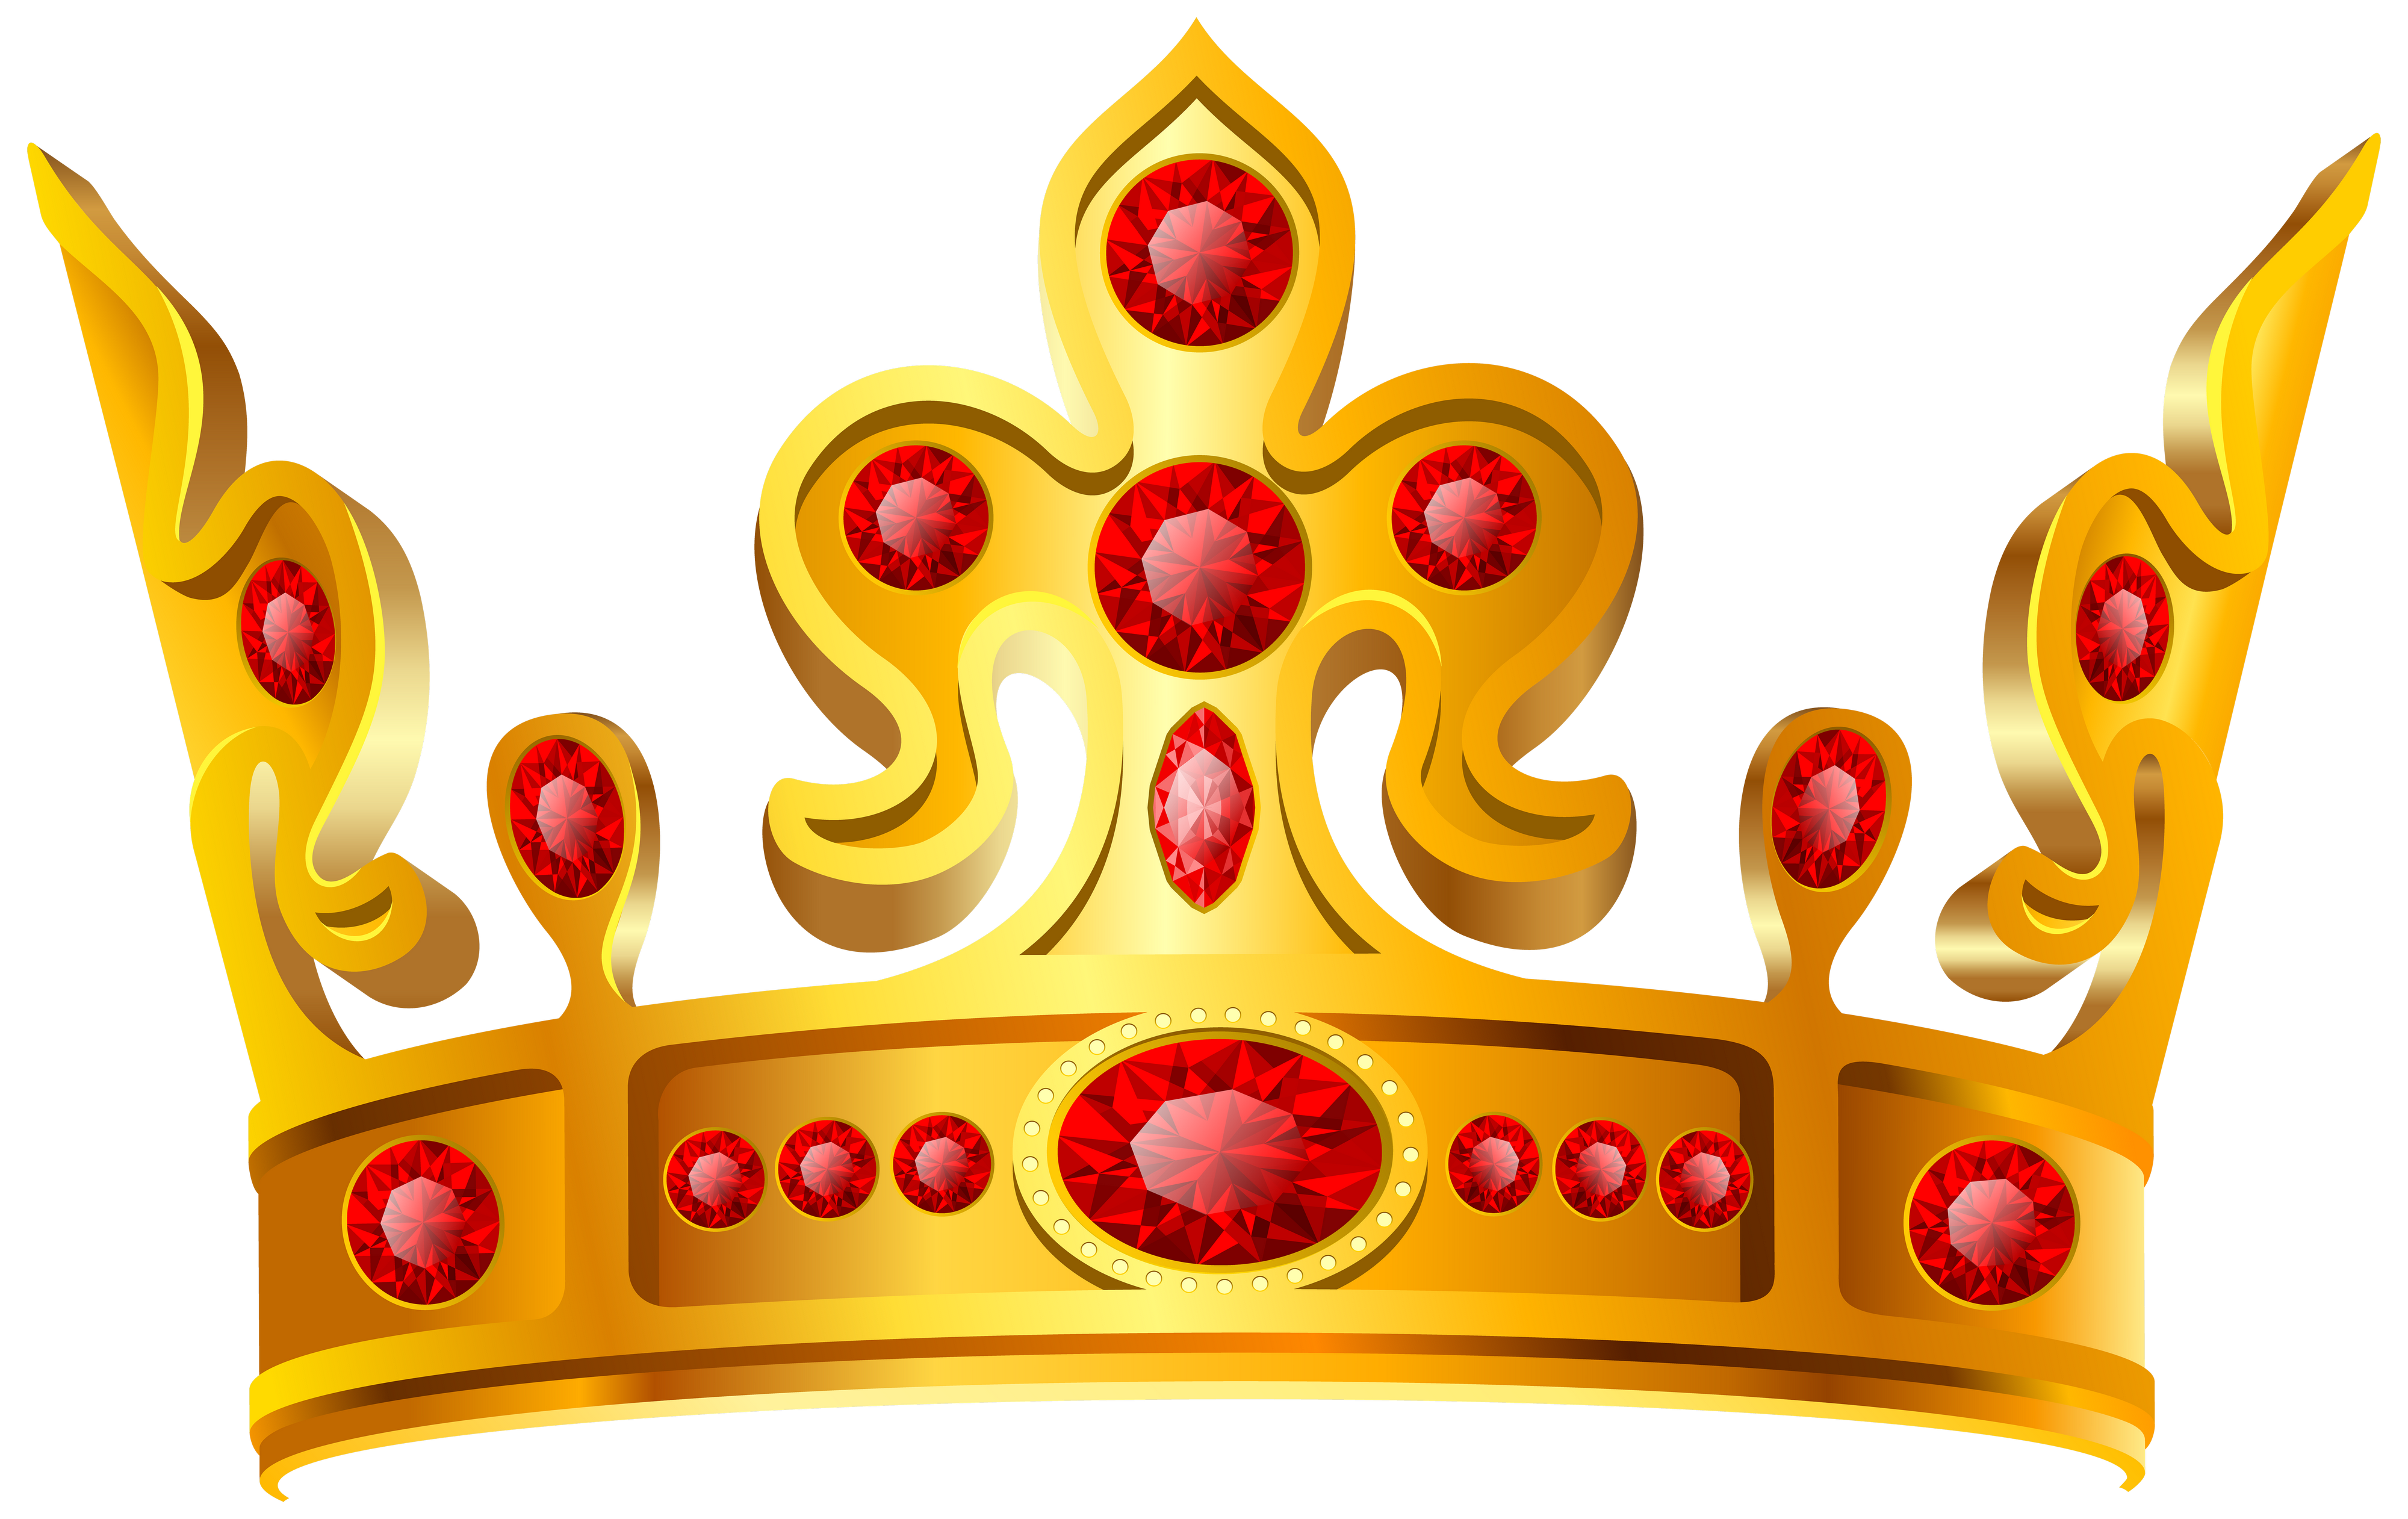 Gold prince crown clipart clip freeuse Gold Crown Red Stone PNG Image - PurePNG | Free transparent CC0 PNG ... clip freeuse